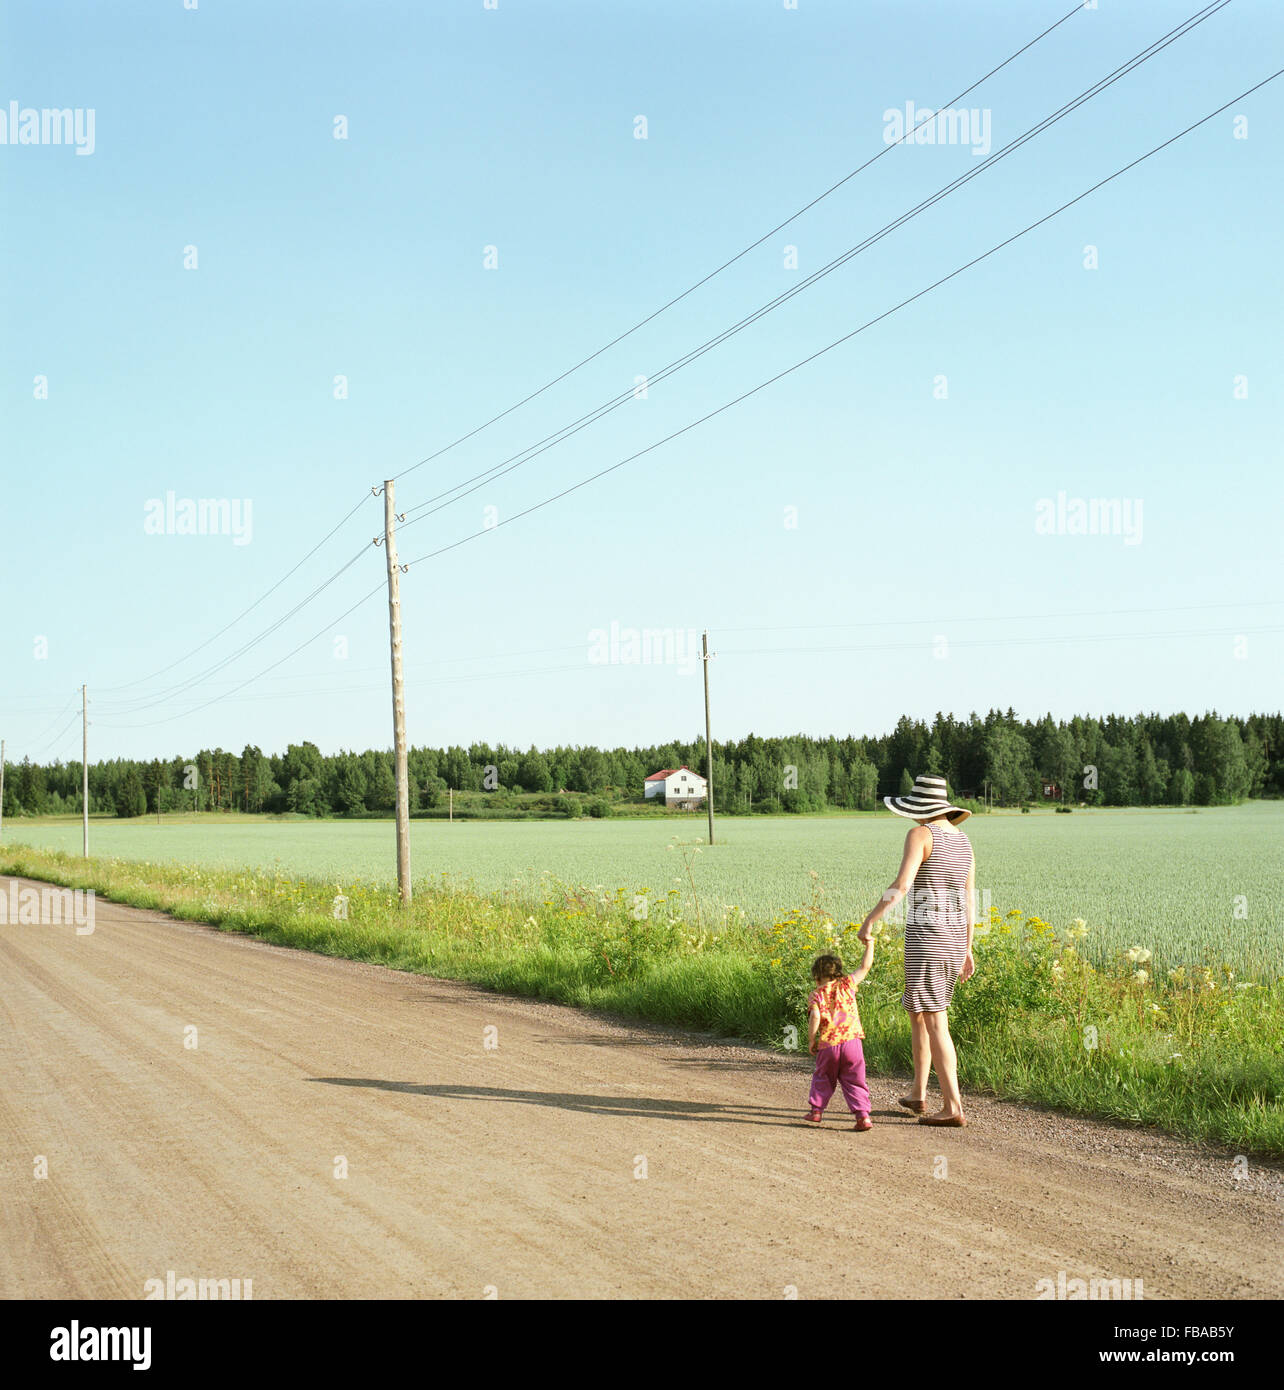 Finland, Uusimaa, Lapinjarvi, Mother and daughter (2-3) walking along dirt road - Stock Image